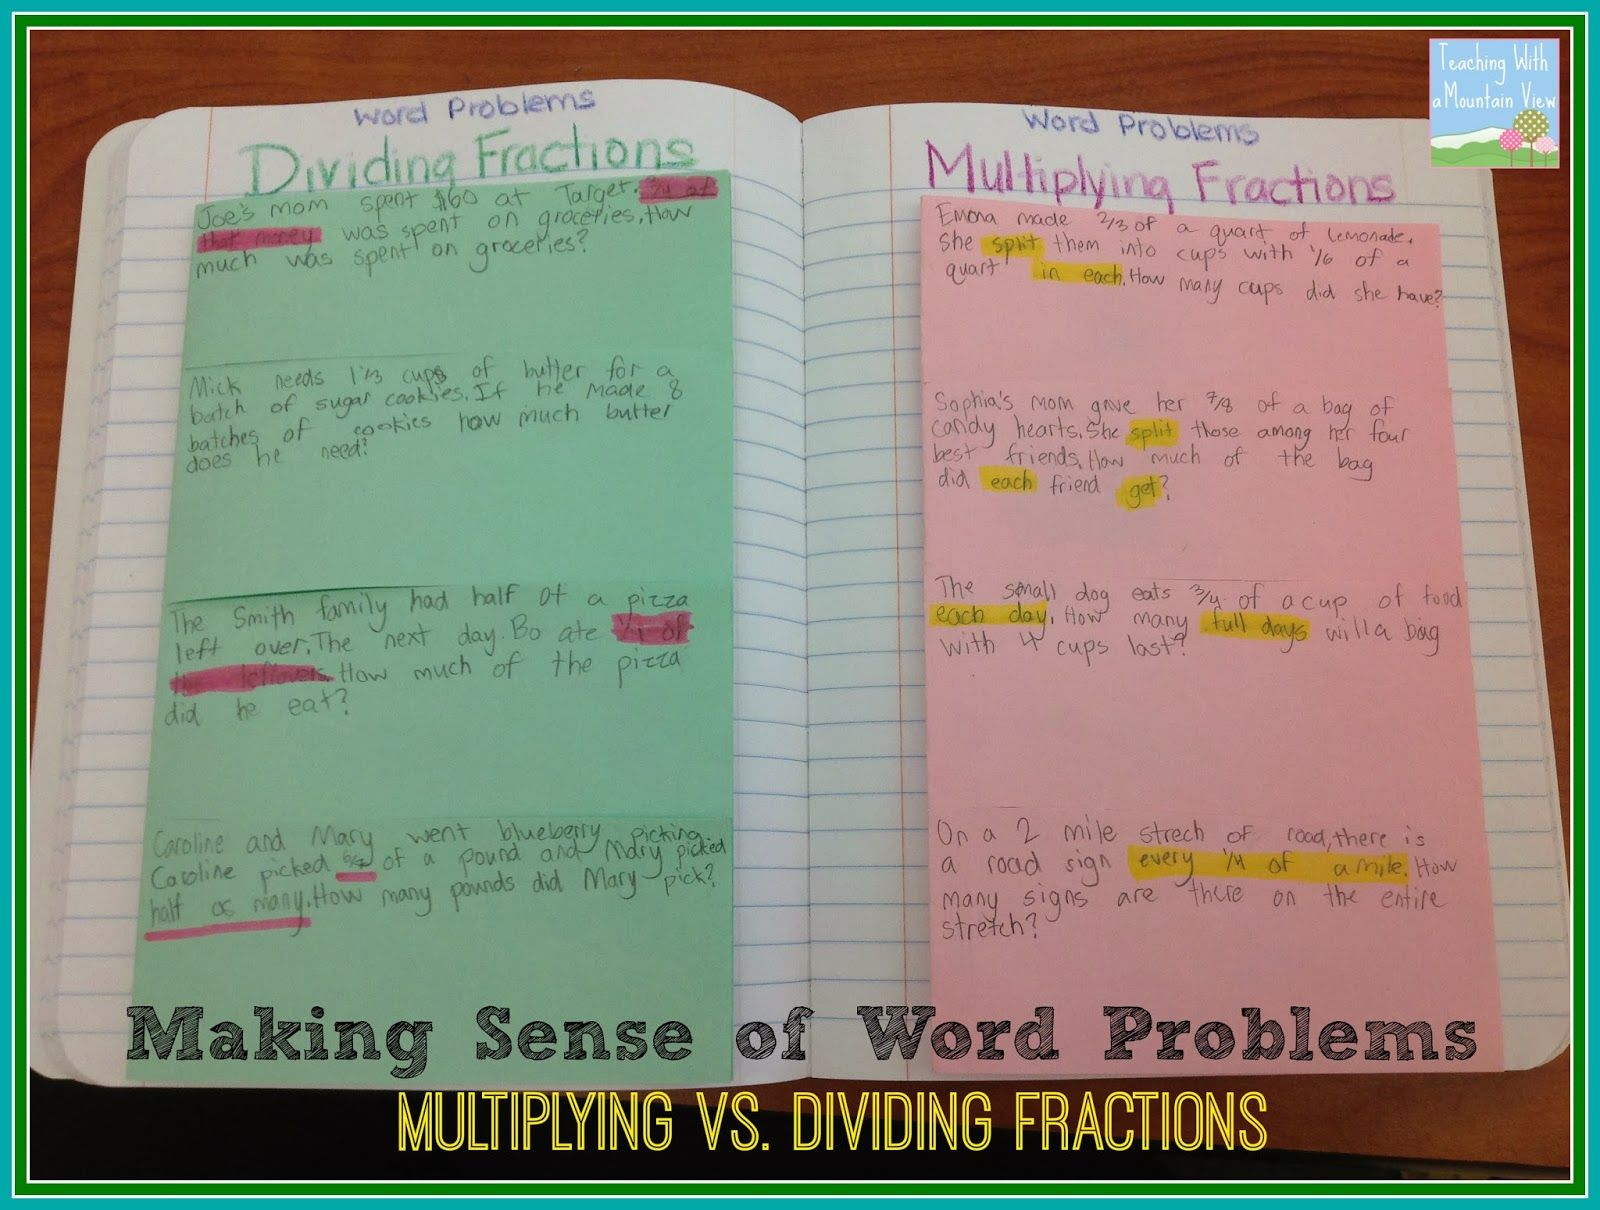 making sense of multiplying & dividing fractions word problems